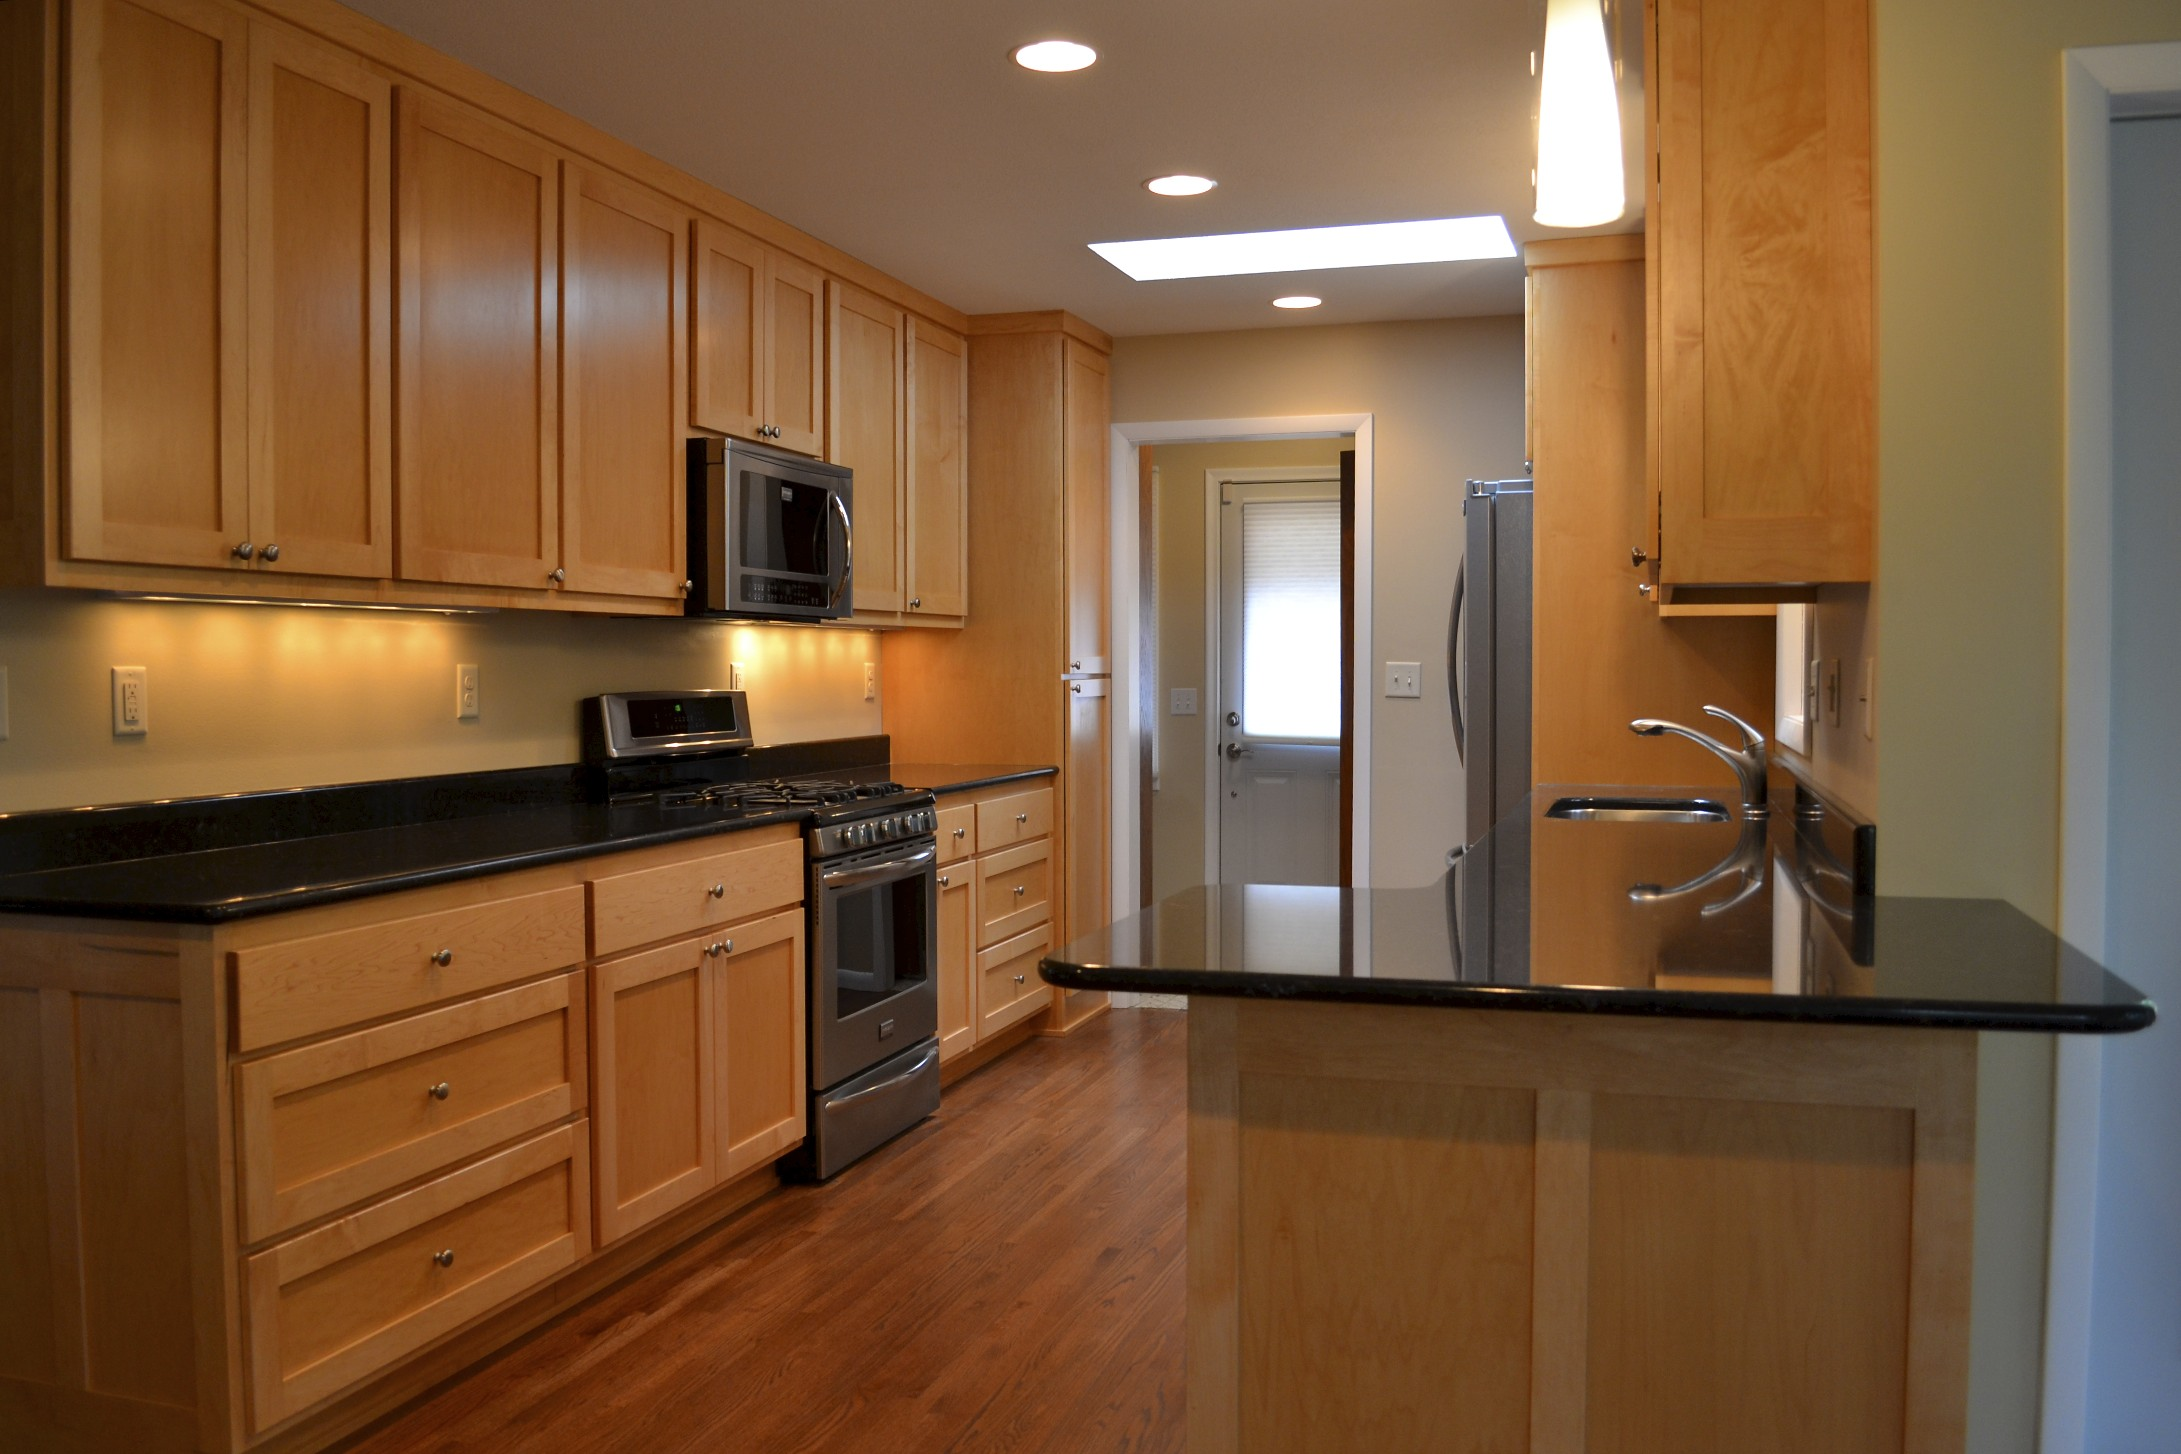 From Black to White   Kitchen Remodel   DBC Extreme Makeover on Black Countertops  id=45623